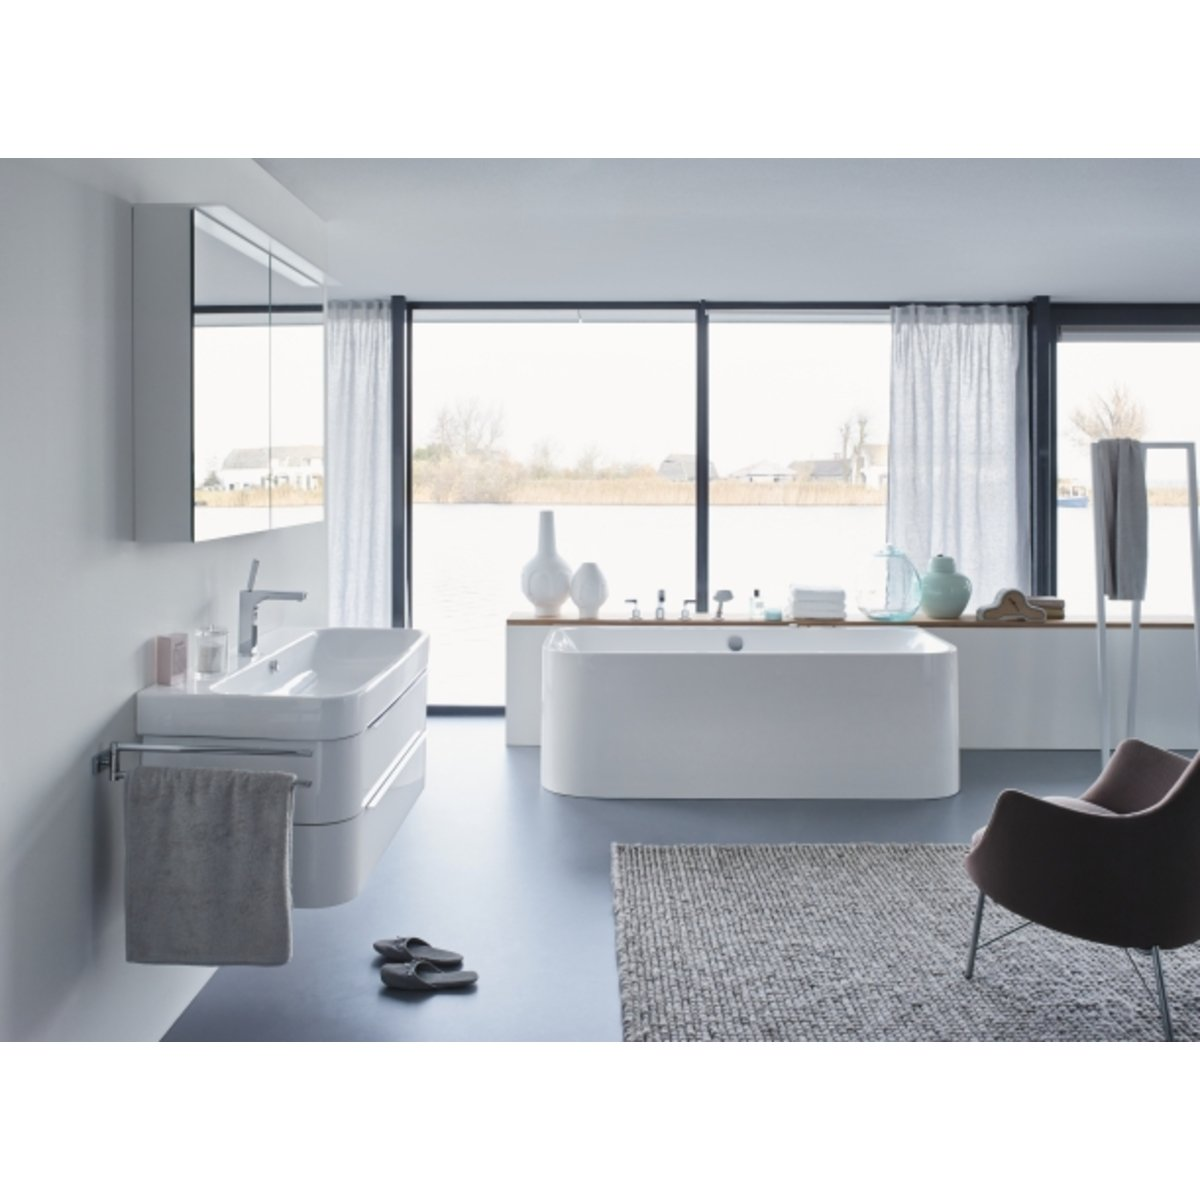 duravit happy d 2 back to wall bad 180 x 80cm met badpanelen wit 700318000000000. Black Bedroom Furniture Sets. Home Design Ideas